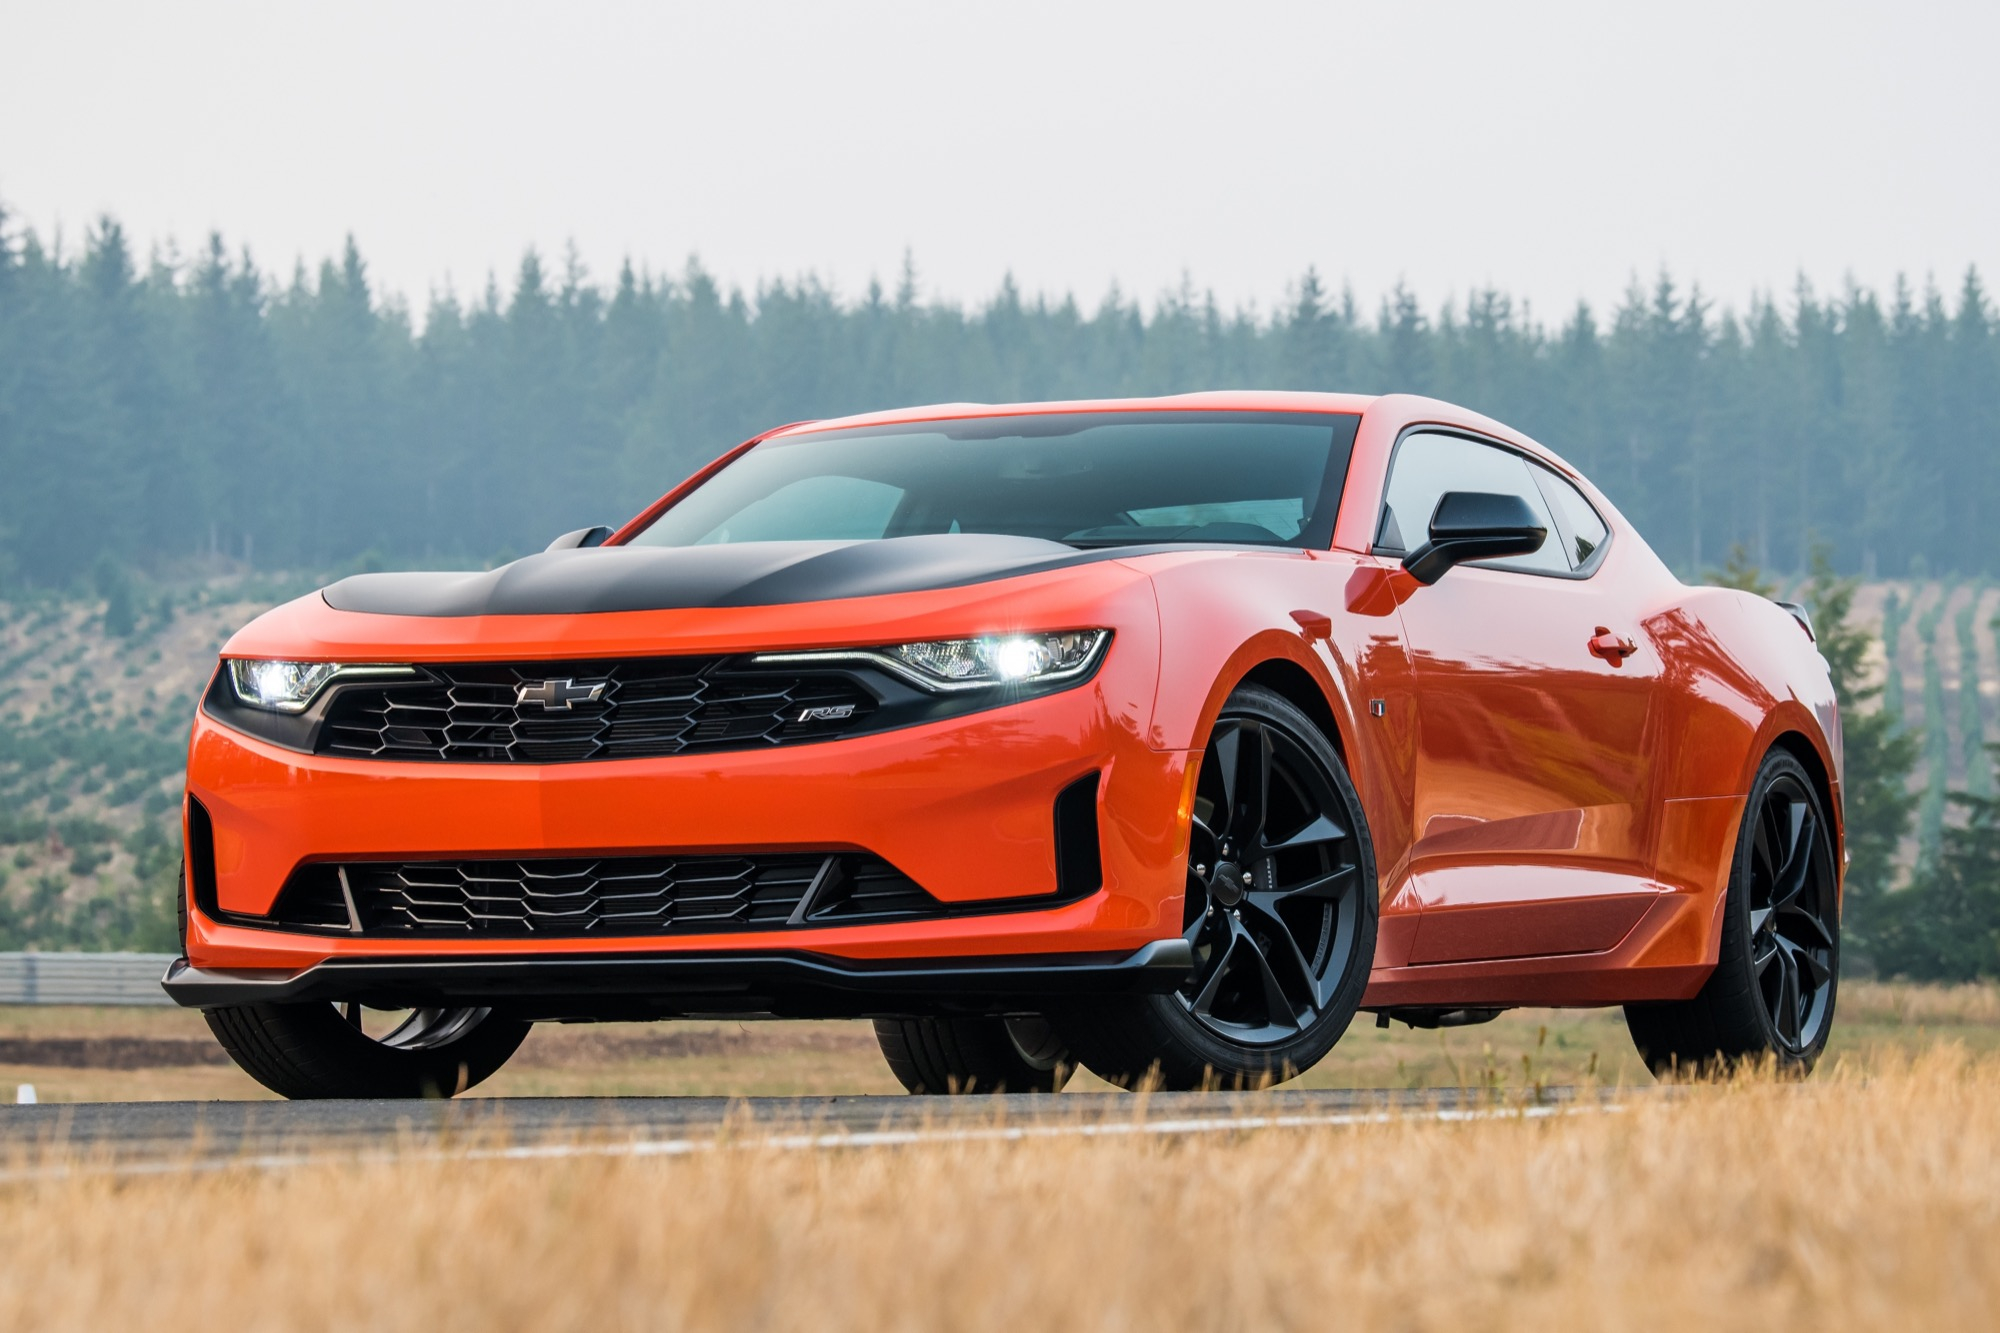 What's Really Going On With The Future Chevrolet Camaro   Gm 2022 Chevy Camaro Price, Awd, Accessories